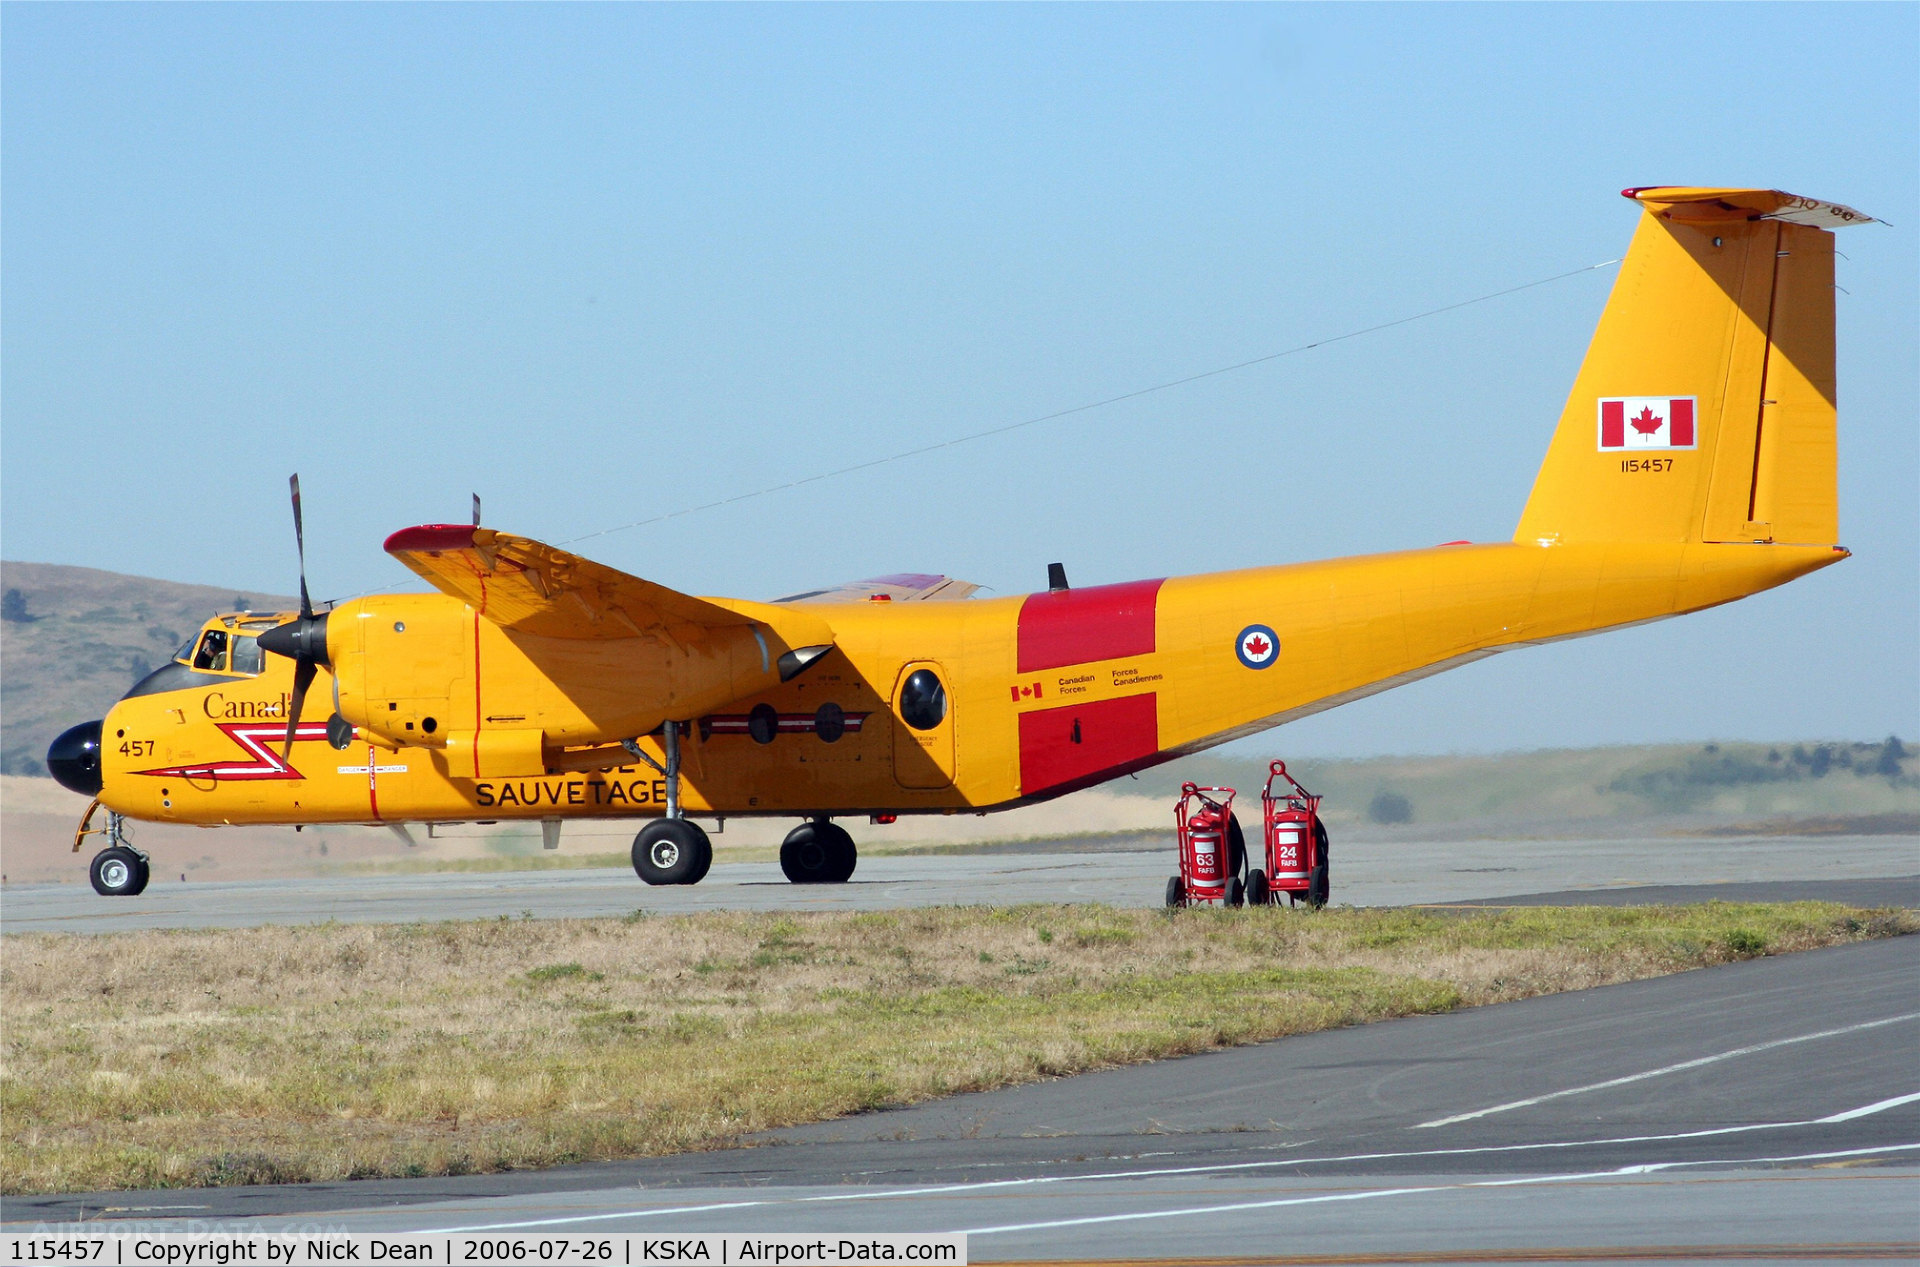 115457, 1967 De Havilland Canada CC-115 Buffalo C/N 11, /